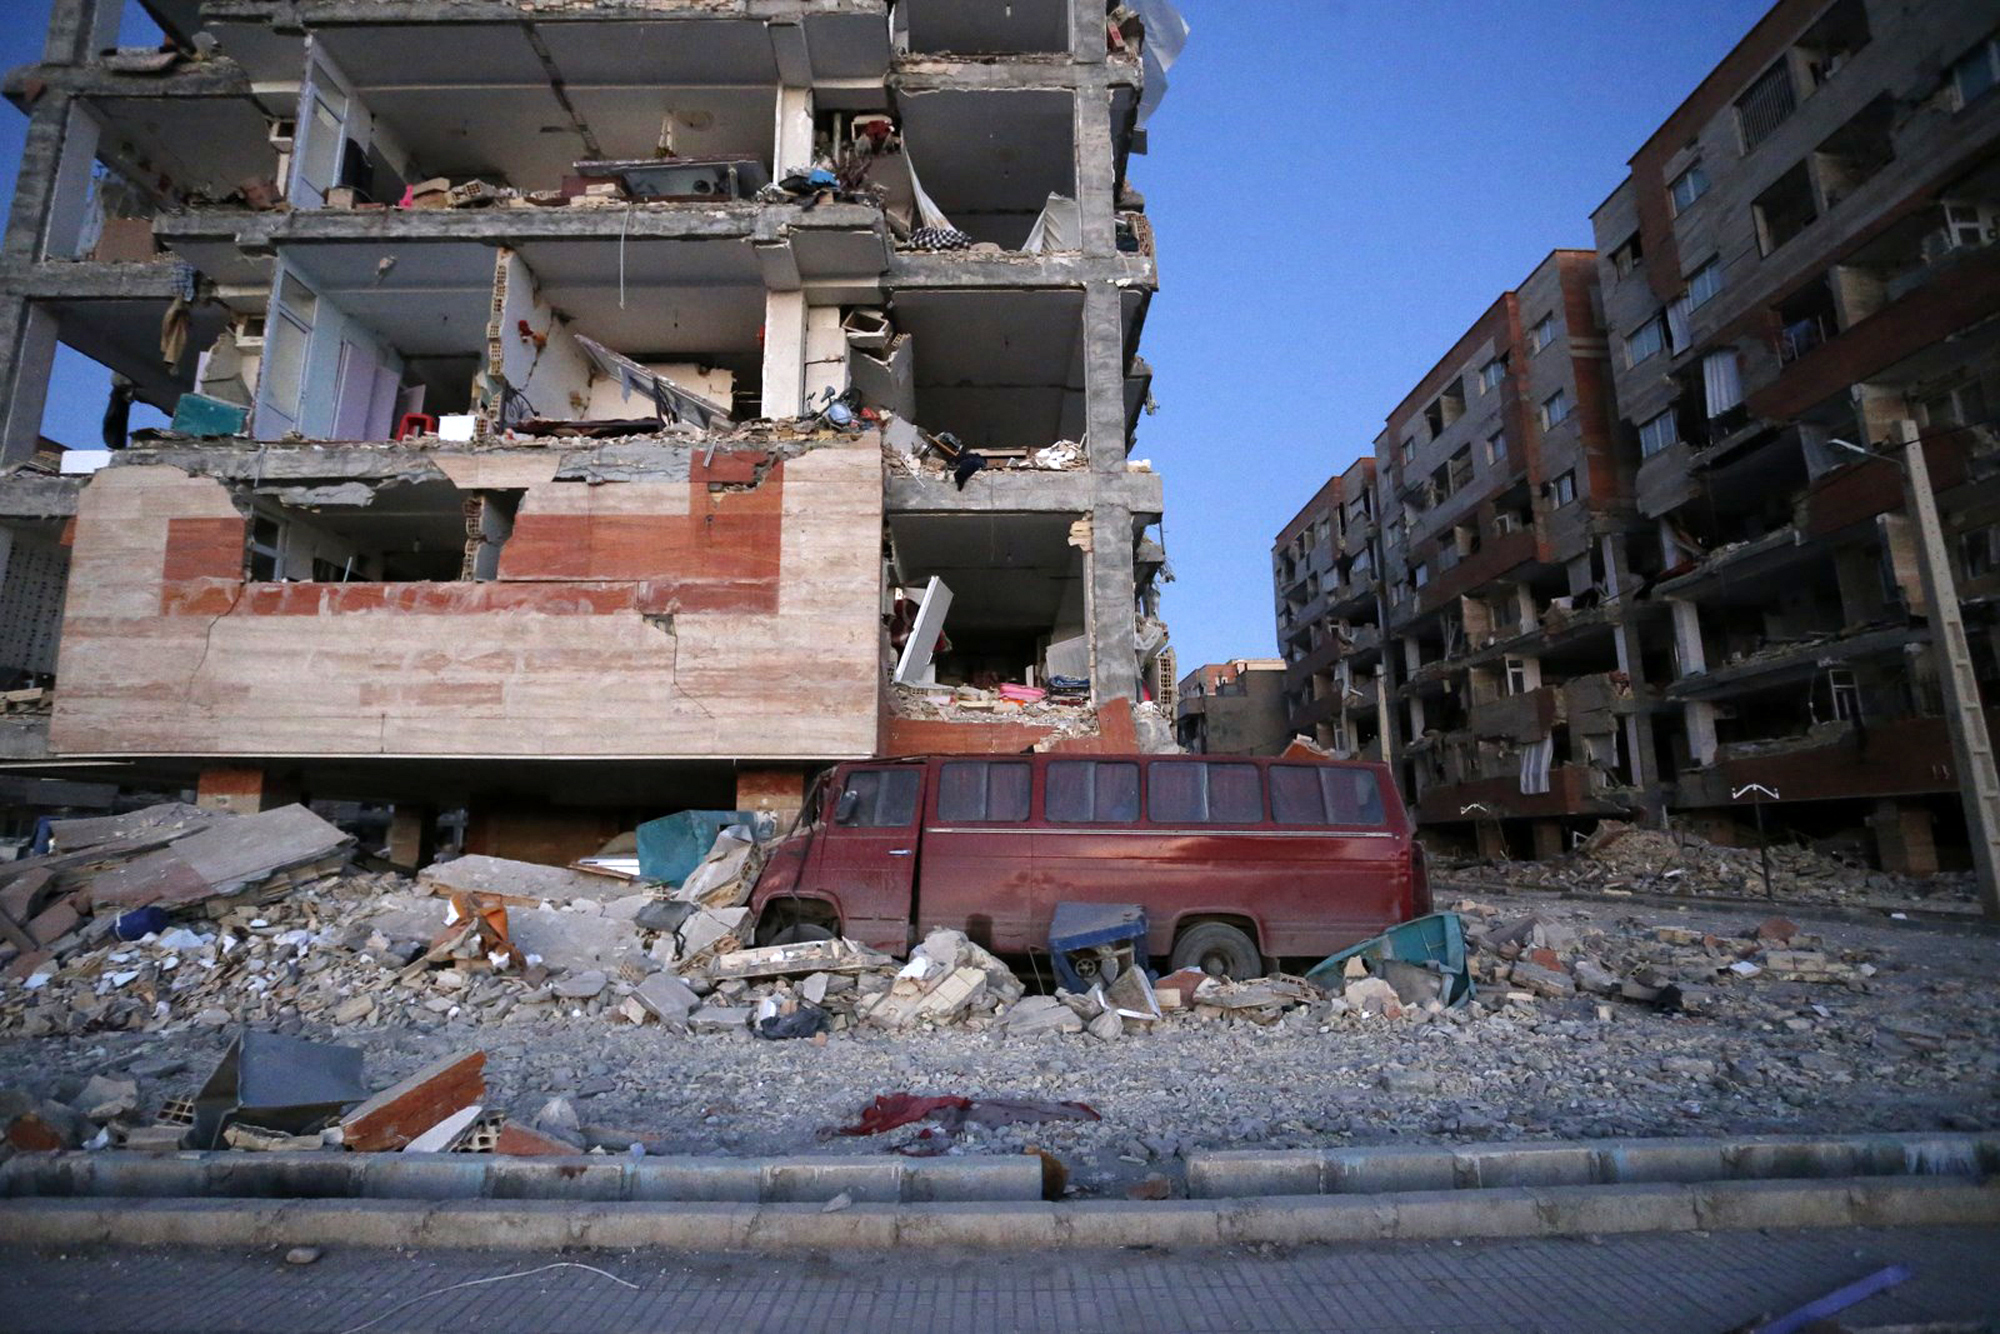 <div class='meta'><div class='origin-logo' data-origin='none'></div><span class='caption-text' data-credit='Pouria Pakizeh/ISNA via AP'>In this photo provided by the ISNA, destroyed buildings and a car are seen after an earthquake at the city of Sarpol-e-Zahab in western Iran, Monday, Nov. 13, 2017.</span></div>